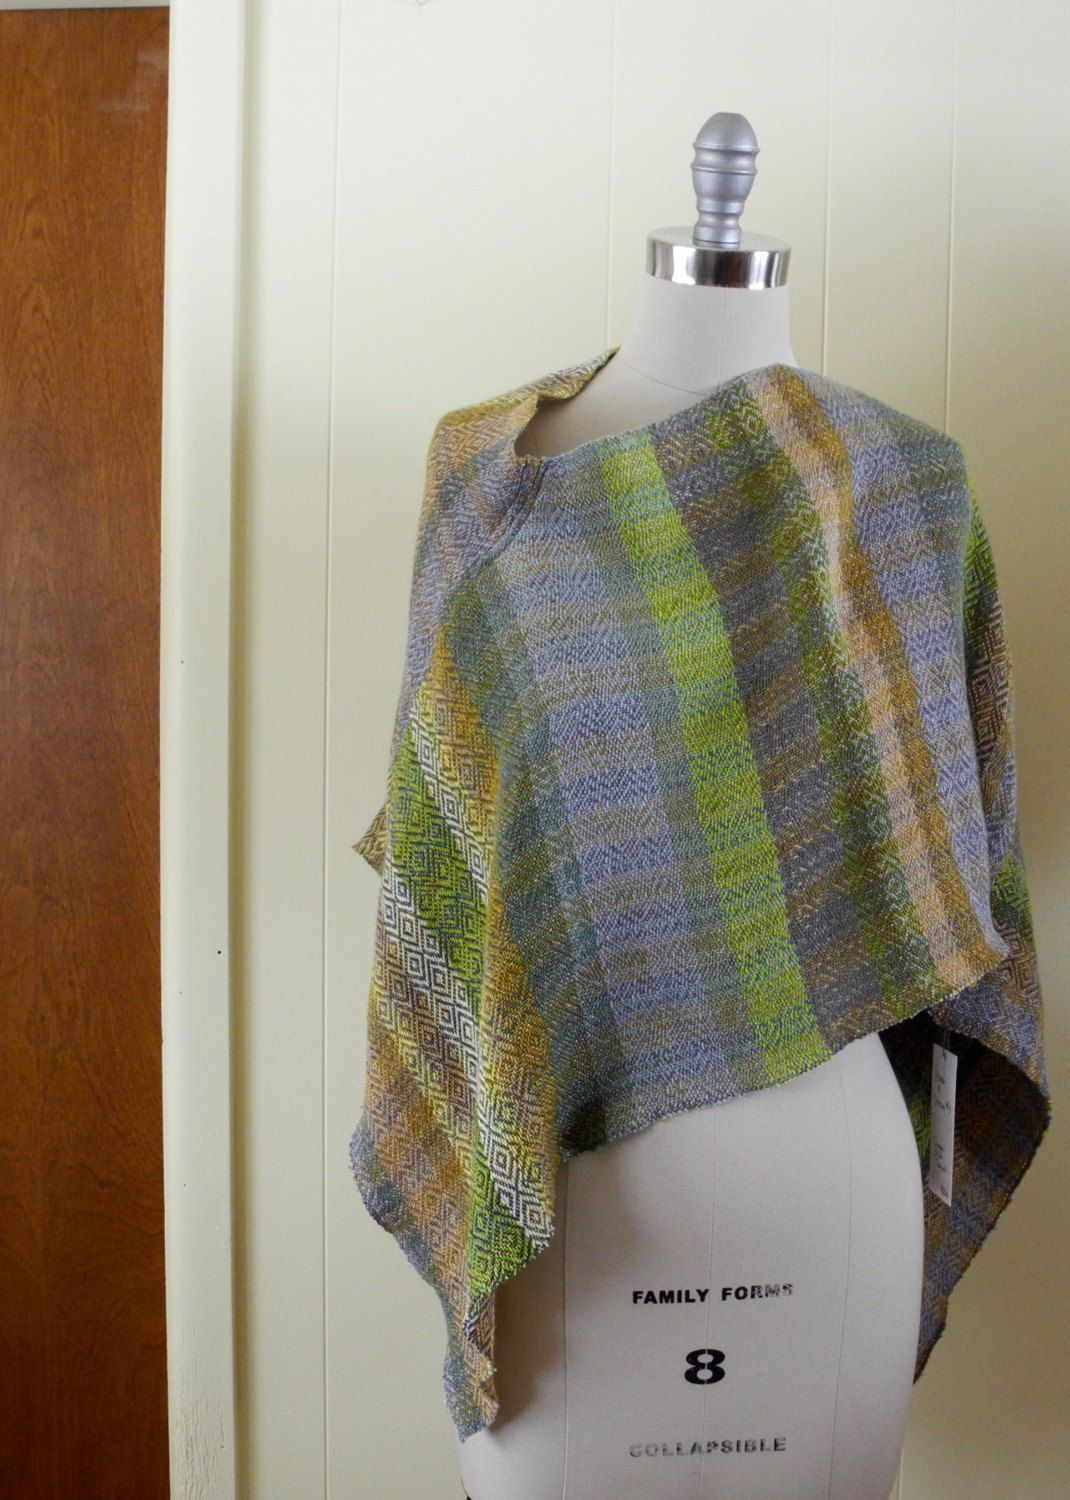 Handwoven Poncho, Handwoven Patterned Triangle Shawl, Silk, Tencel, Linen by riverweavestudio on Etsy